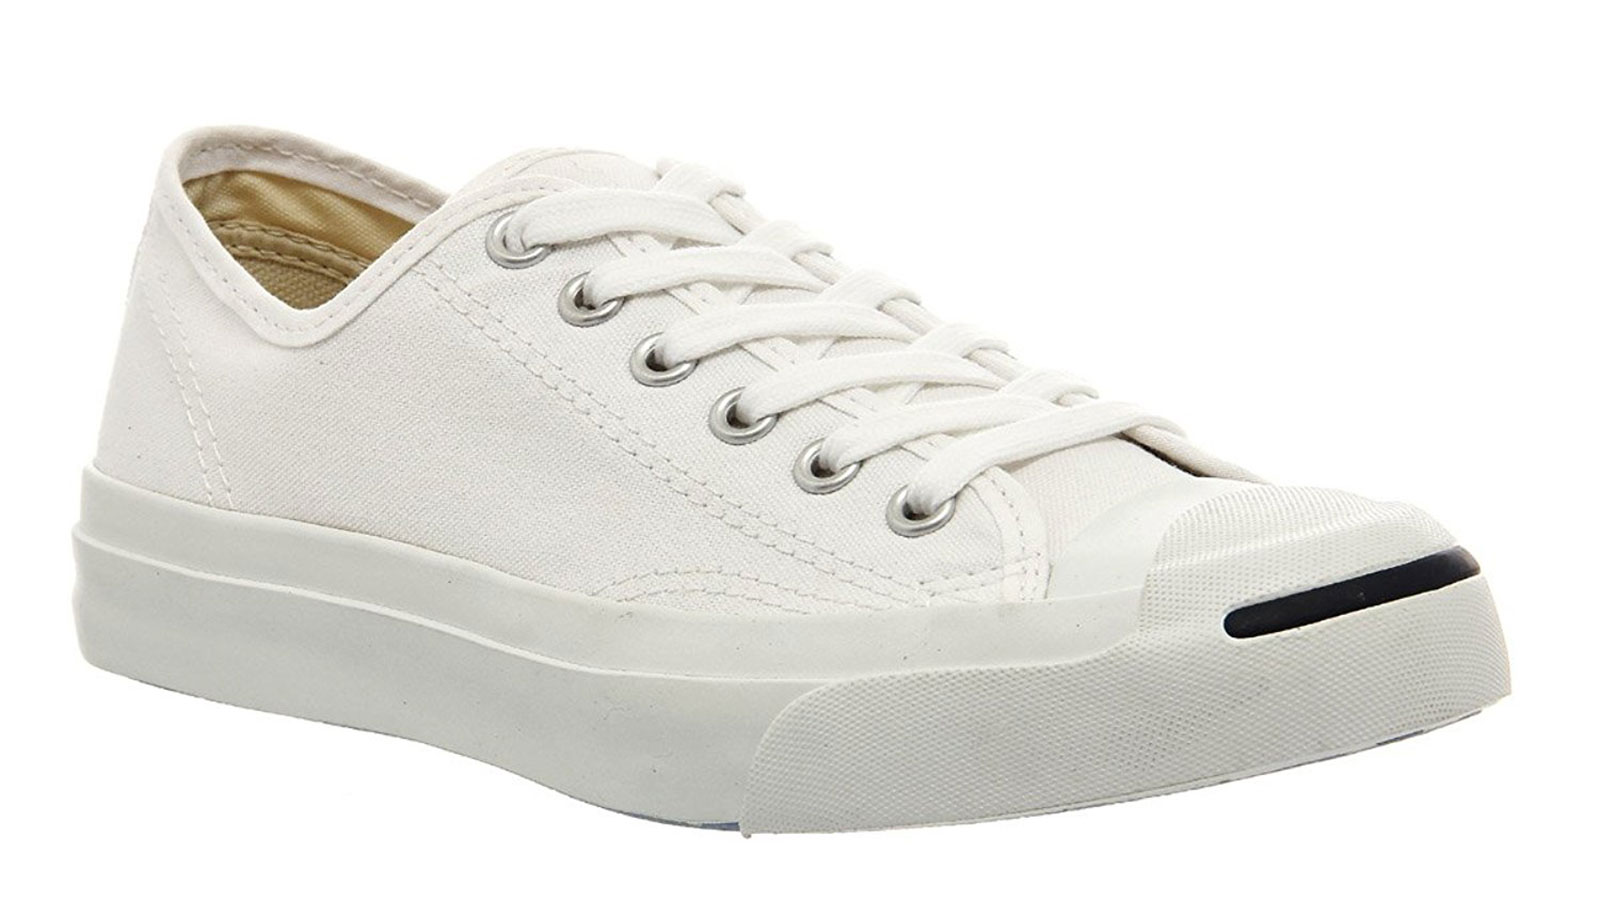 Converse Jack Purcell Signature White Sneakers | best men's white sneakers